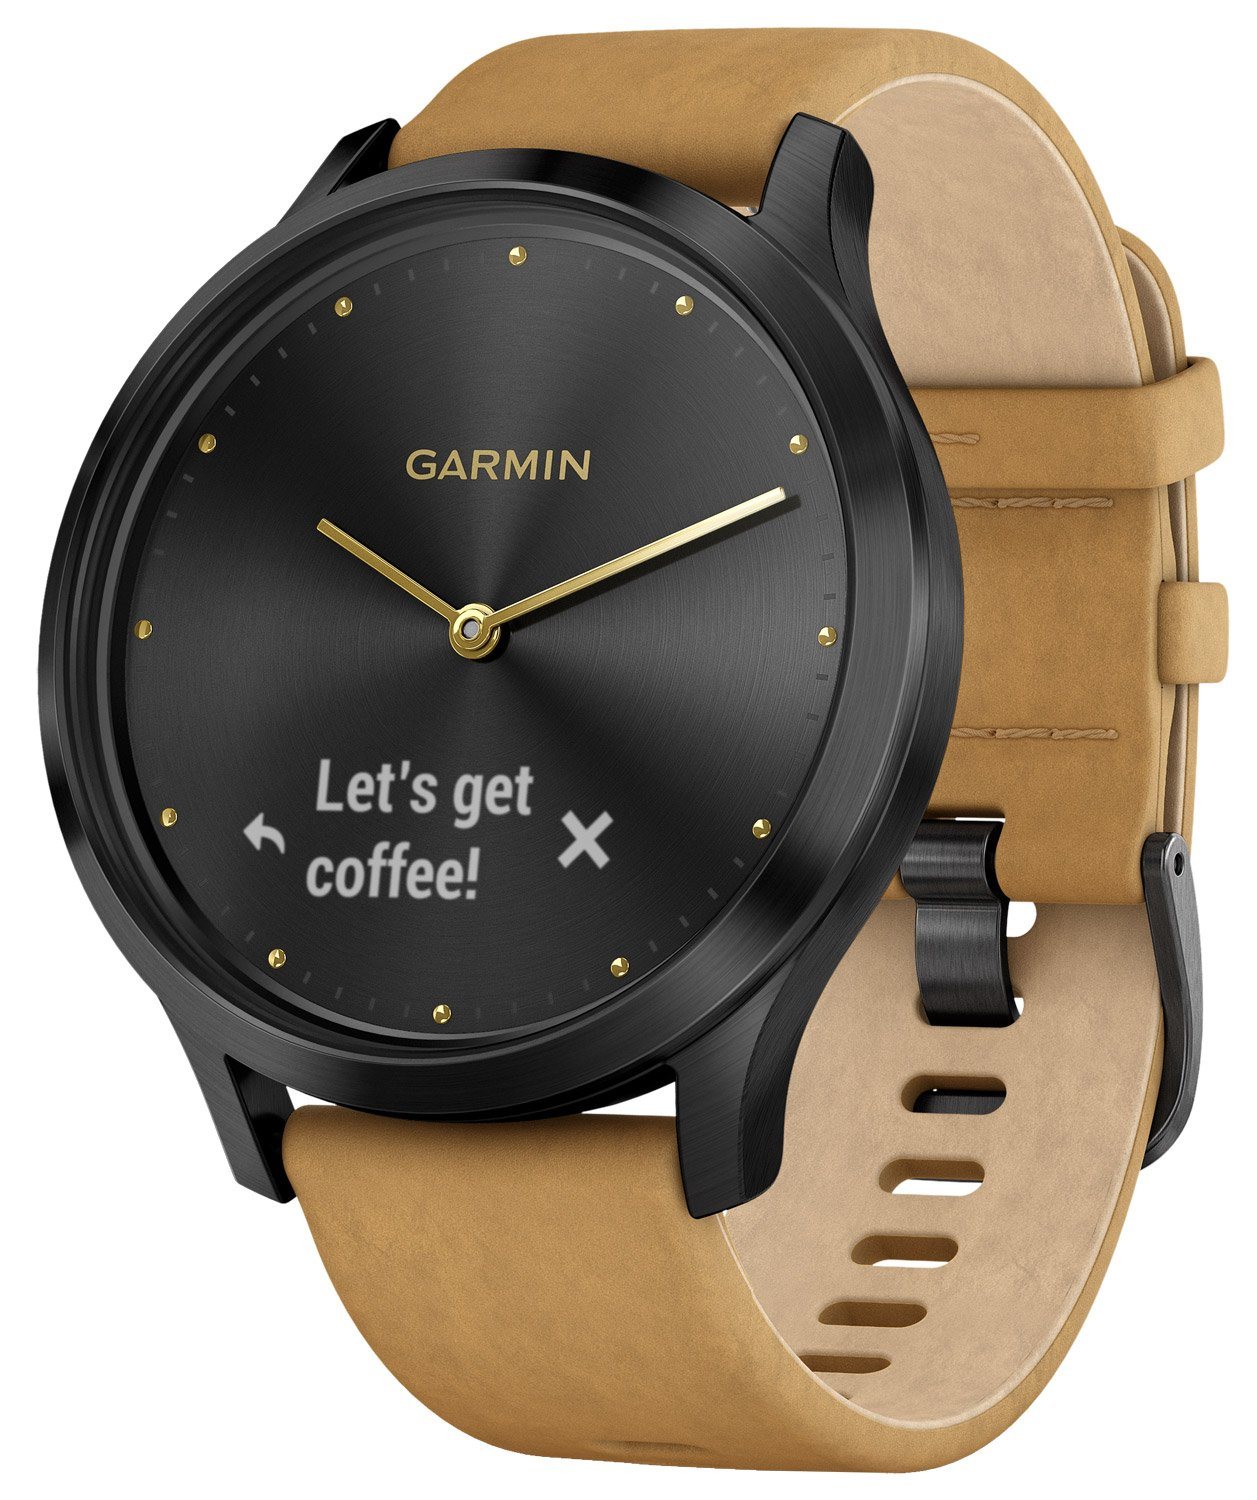 Garmin 010-01850-00 vivomove® HR Premium Fitness-Tracker Smartwatch Black/Tan